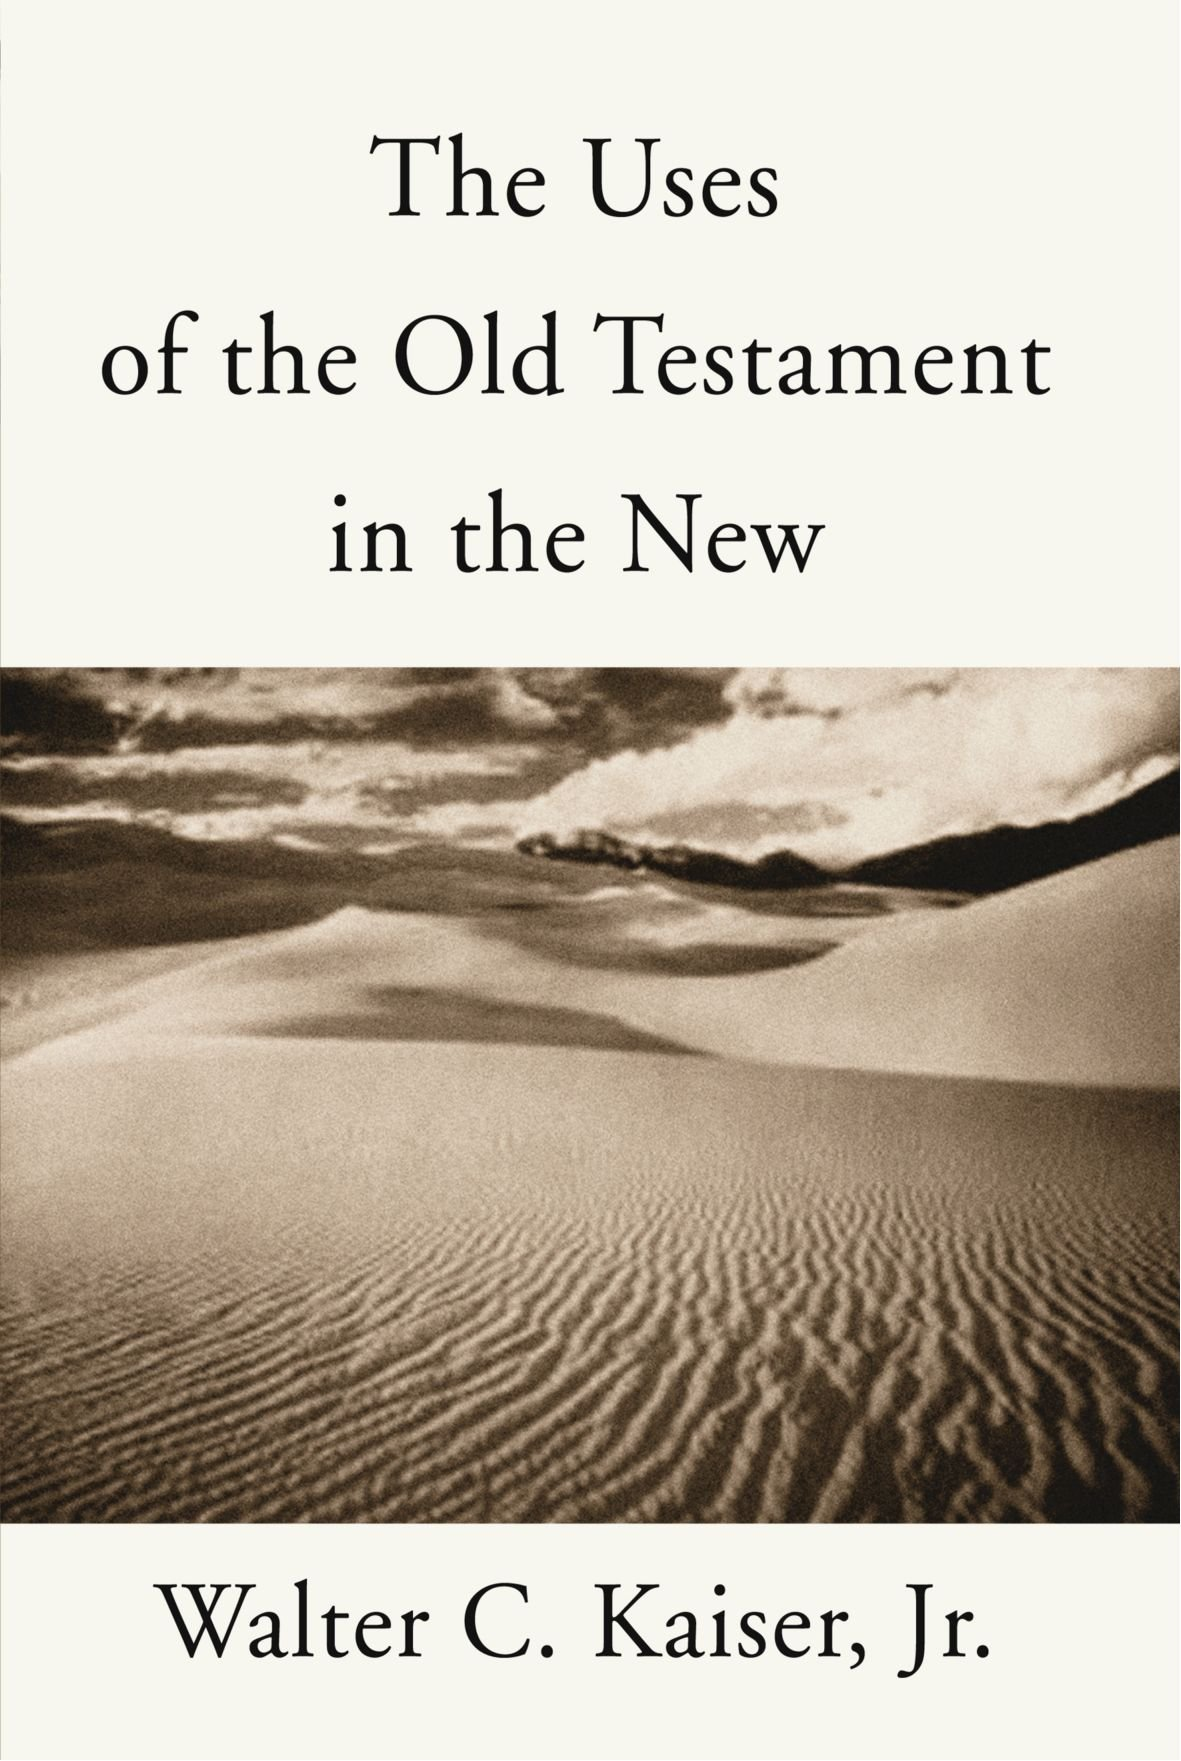 Download The Uses of the Old Testament in the New: pdf